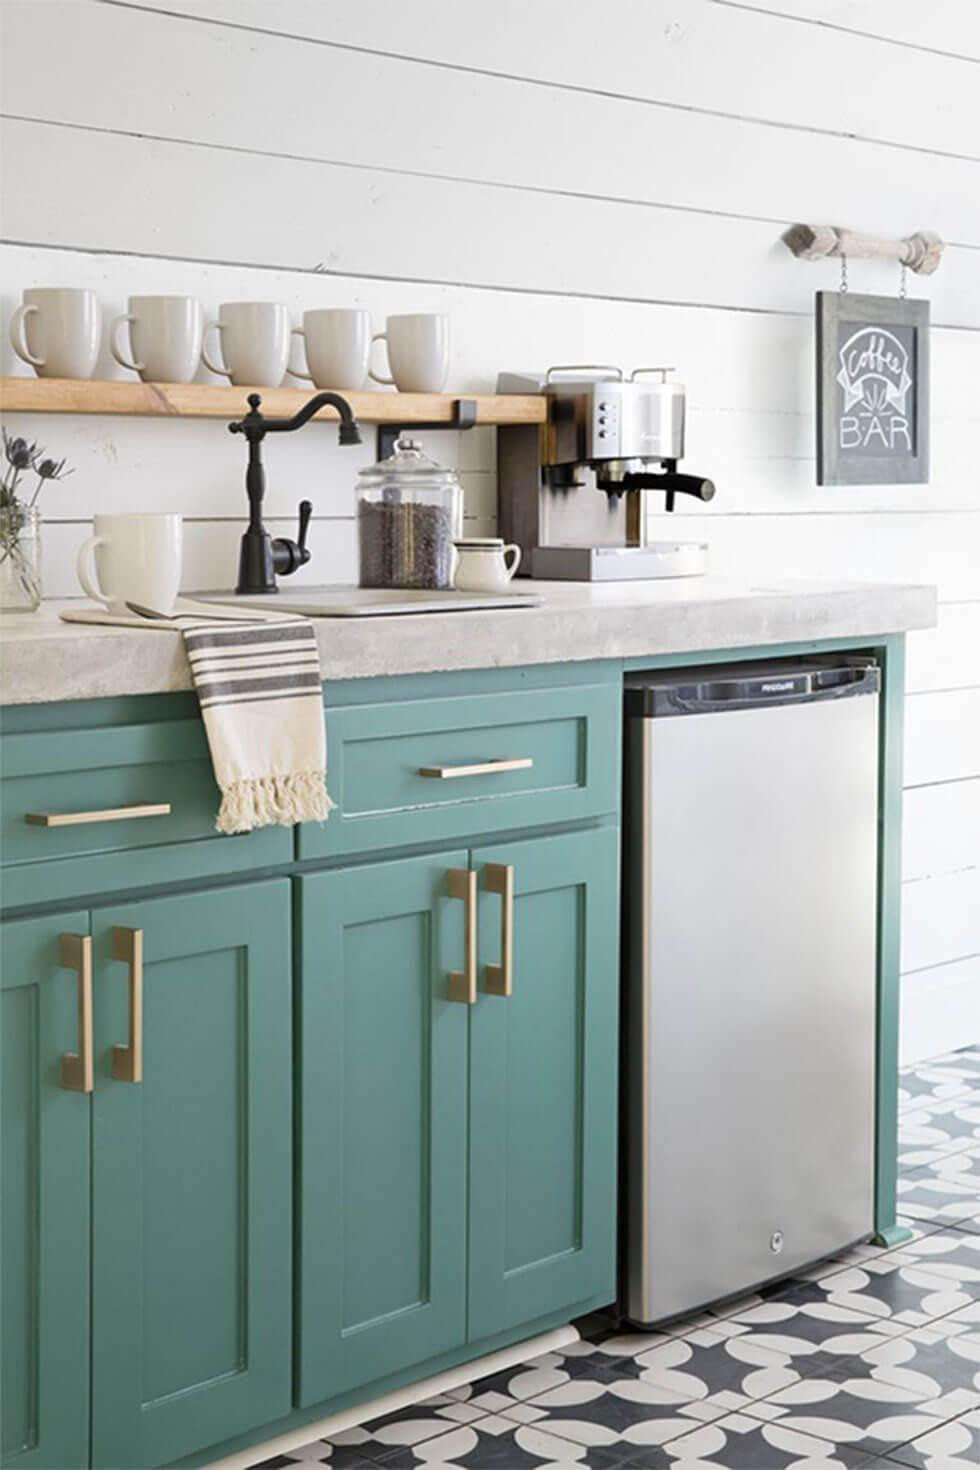 Simple white small kitchen with shiplap walls, teal cabinets with gold handles, and geometric floor tiles